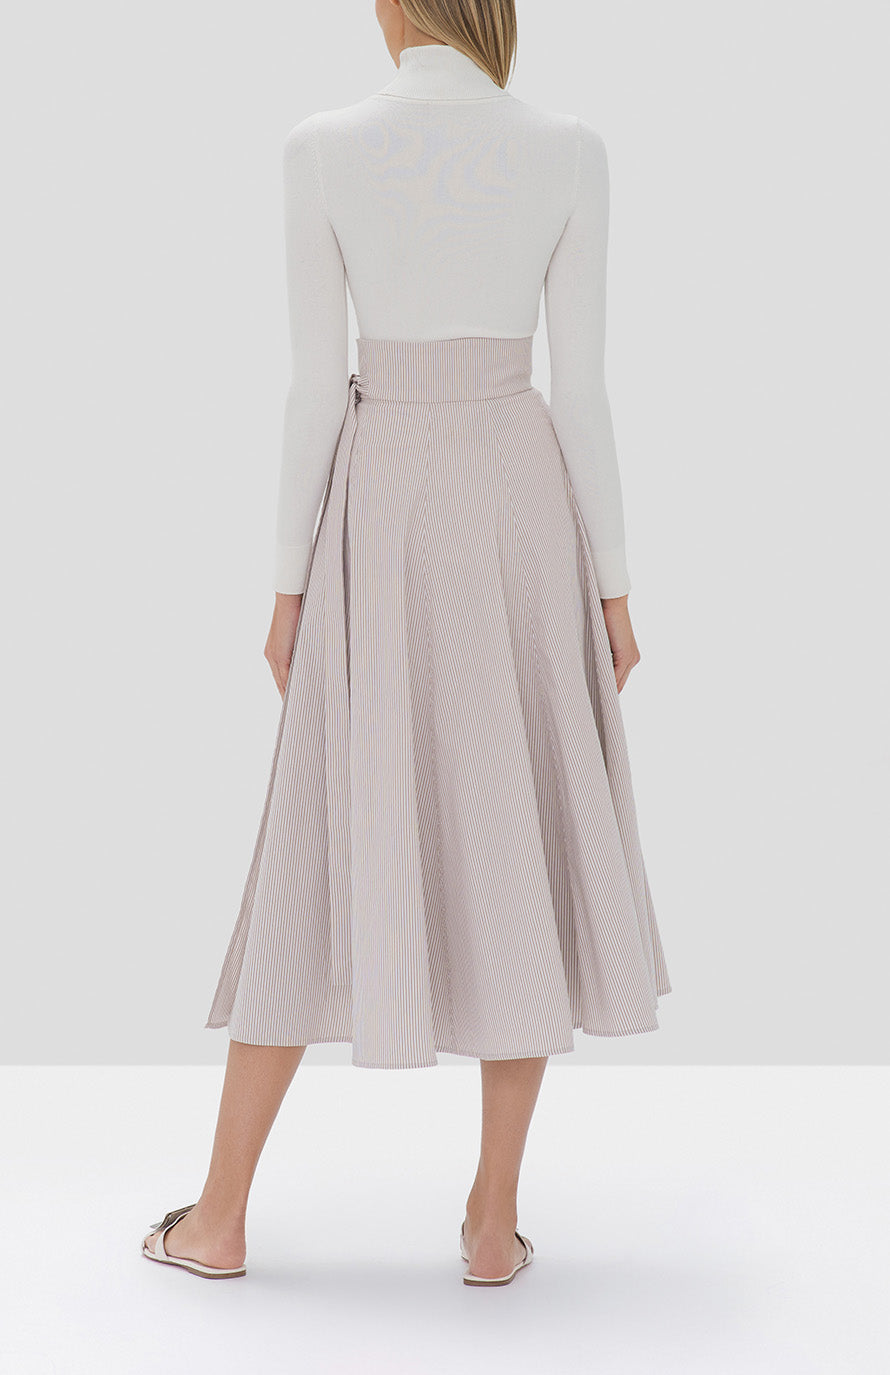 Alexis Ikram Skirt in Textured Tan Stripes and Jaiko Turtleneck Top in White from the Fall Winter 2019 Ready To Wear Collection - Rear View